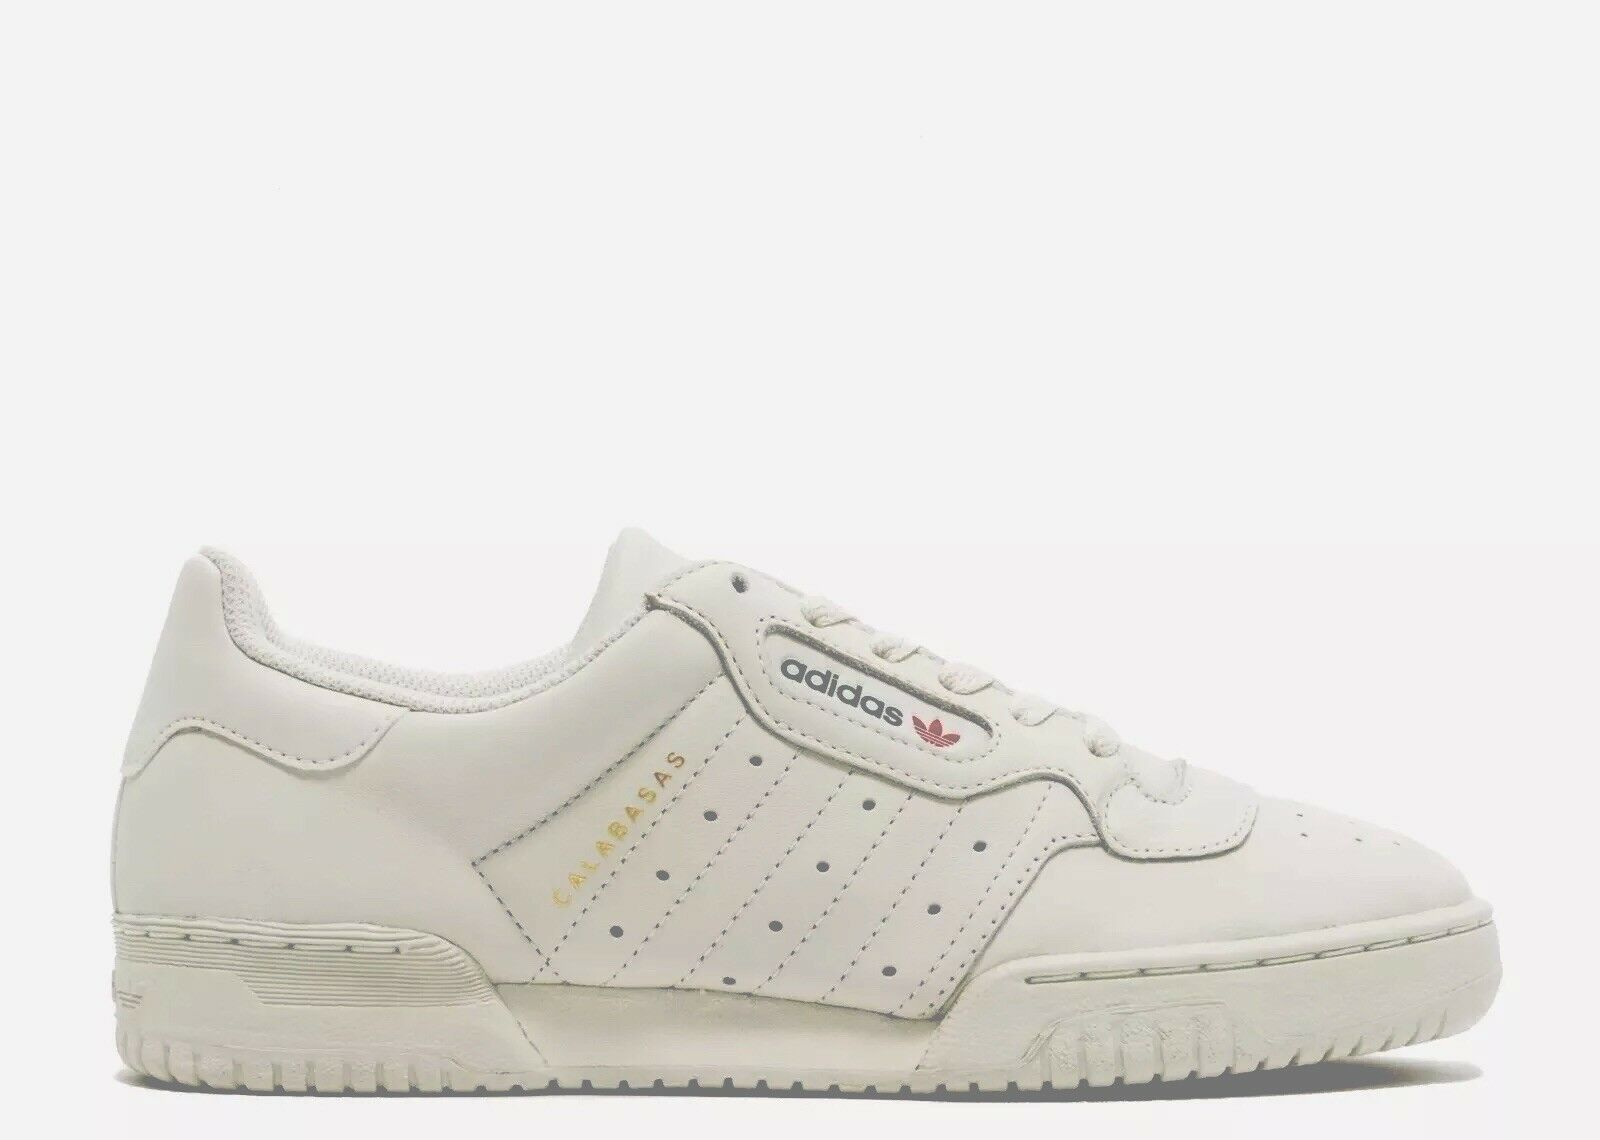 Cheap Nice yeezy powerphase calabasas on the sale